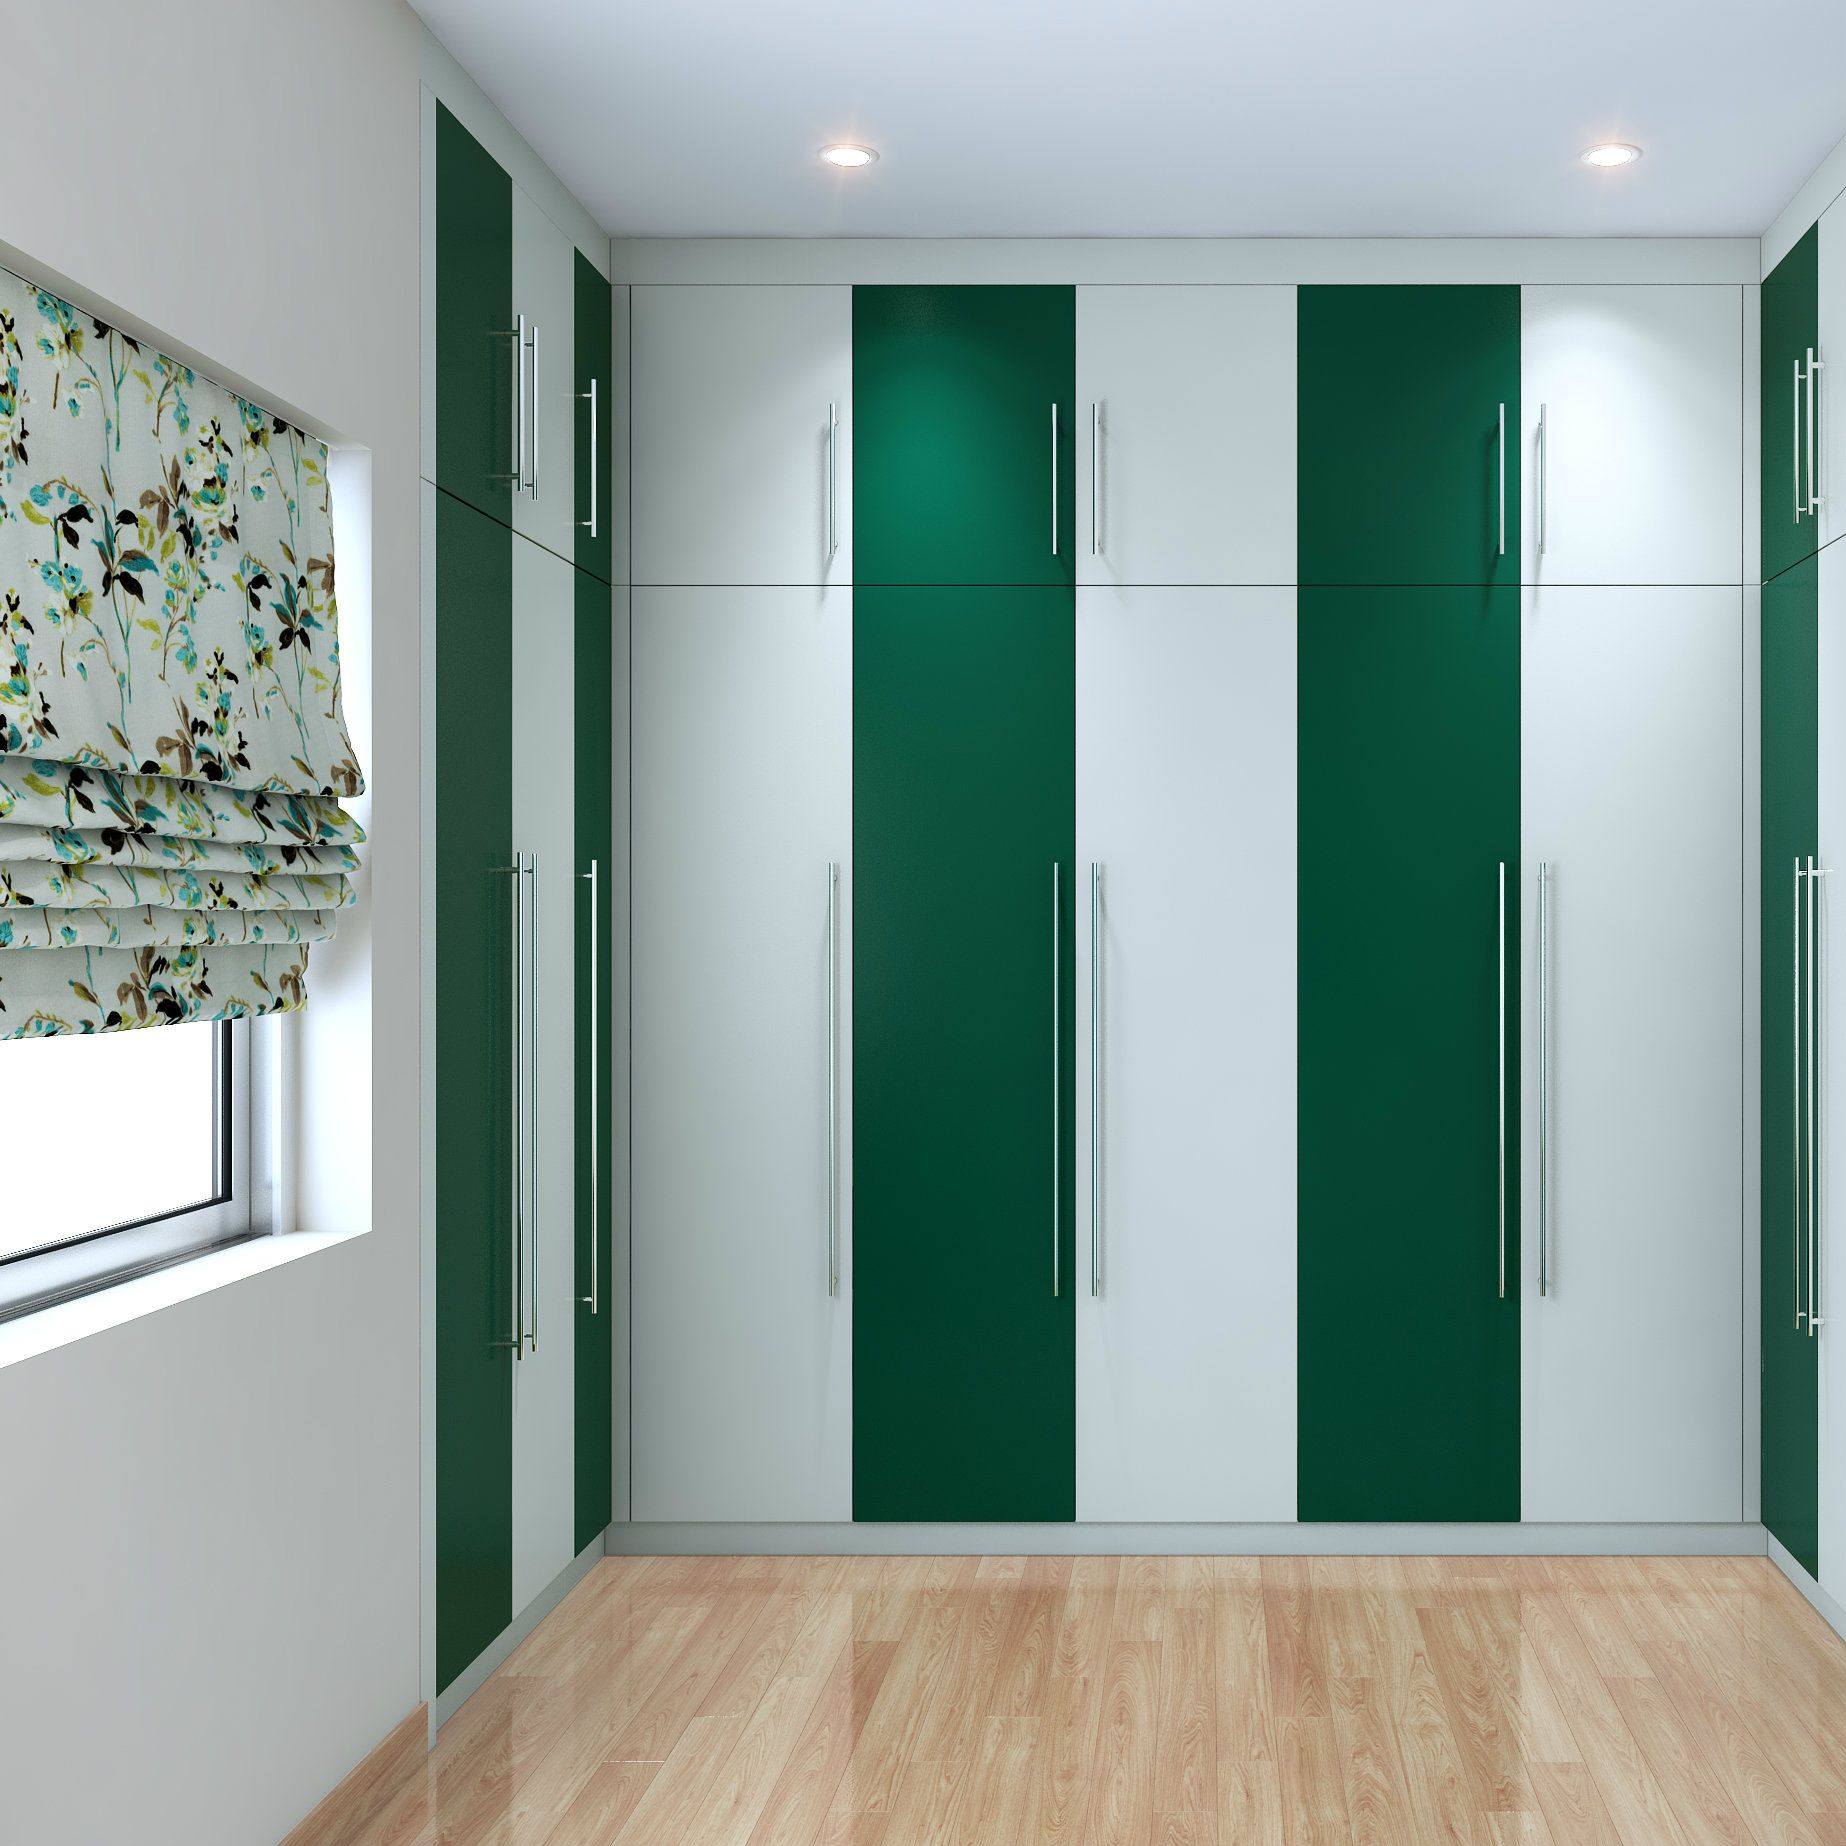 Best A White And Green Striped Modular Wardrobe For A Quirky 400 x 300